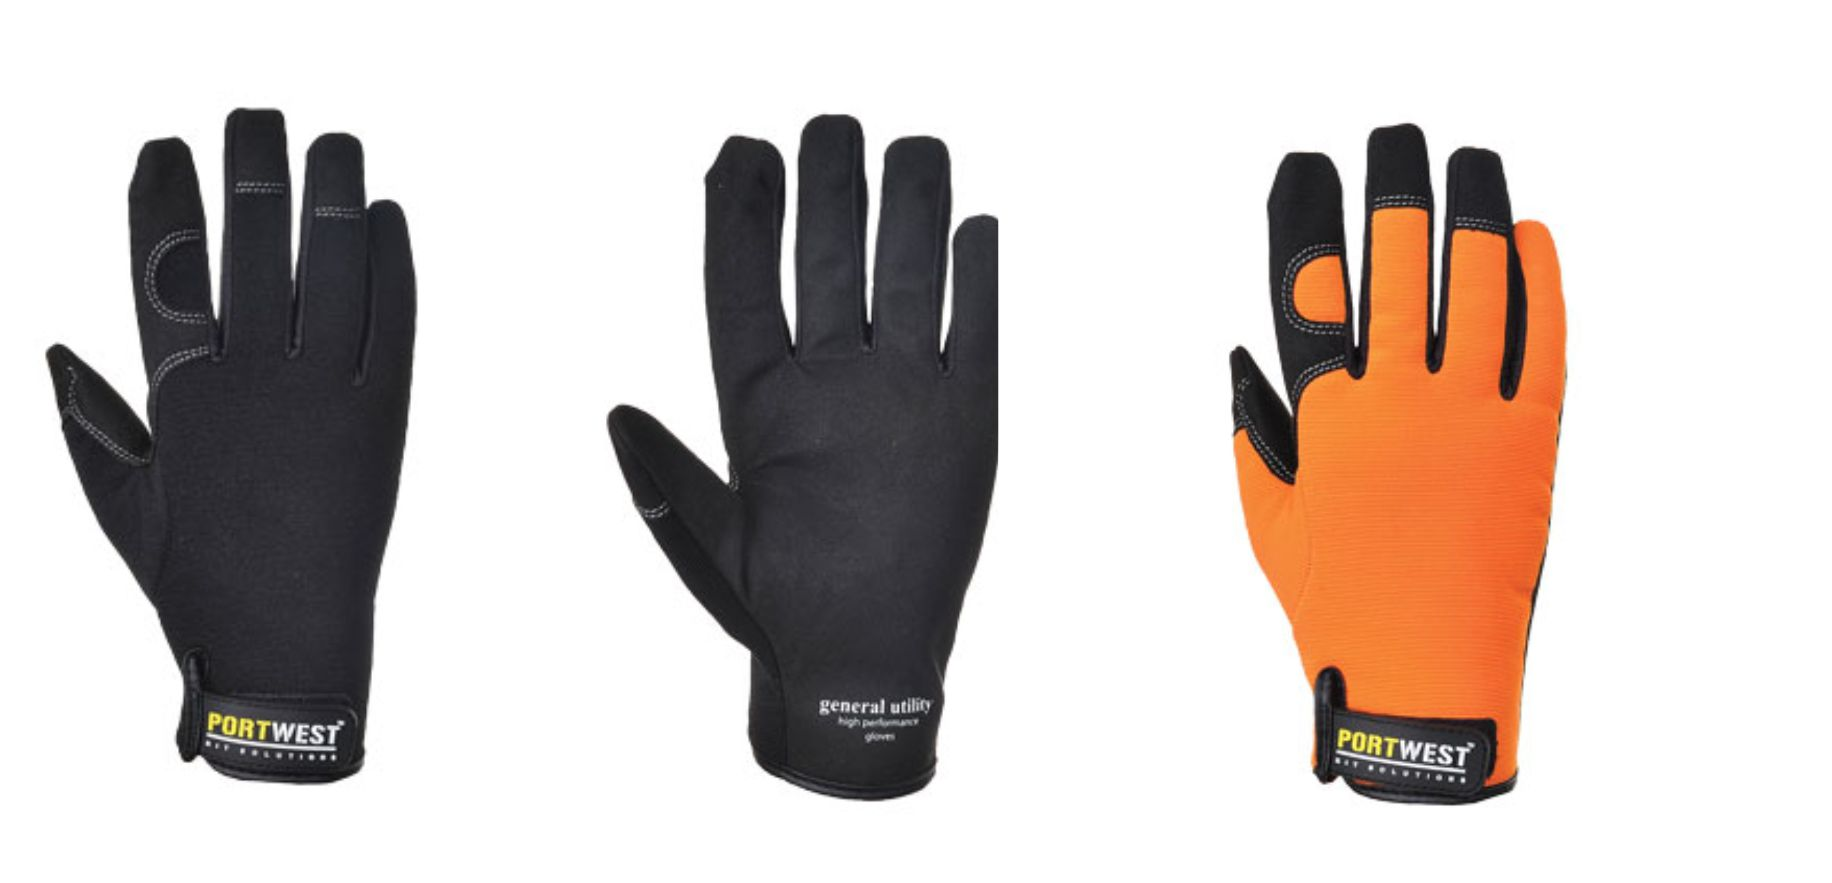 A700 General Utility- High Performance Glove